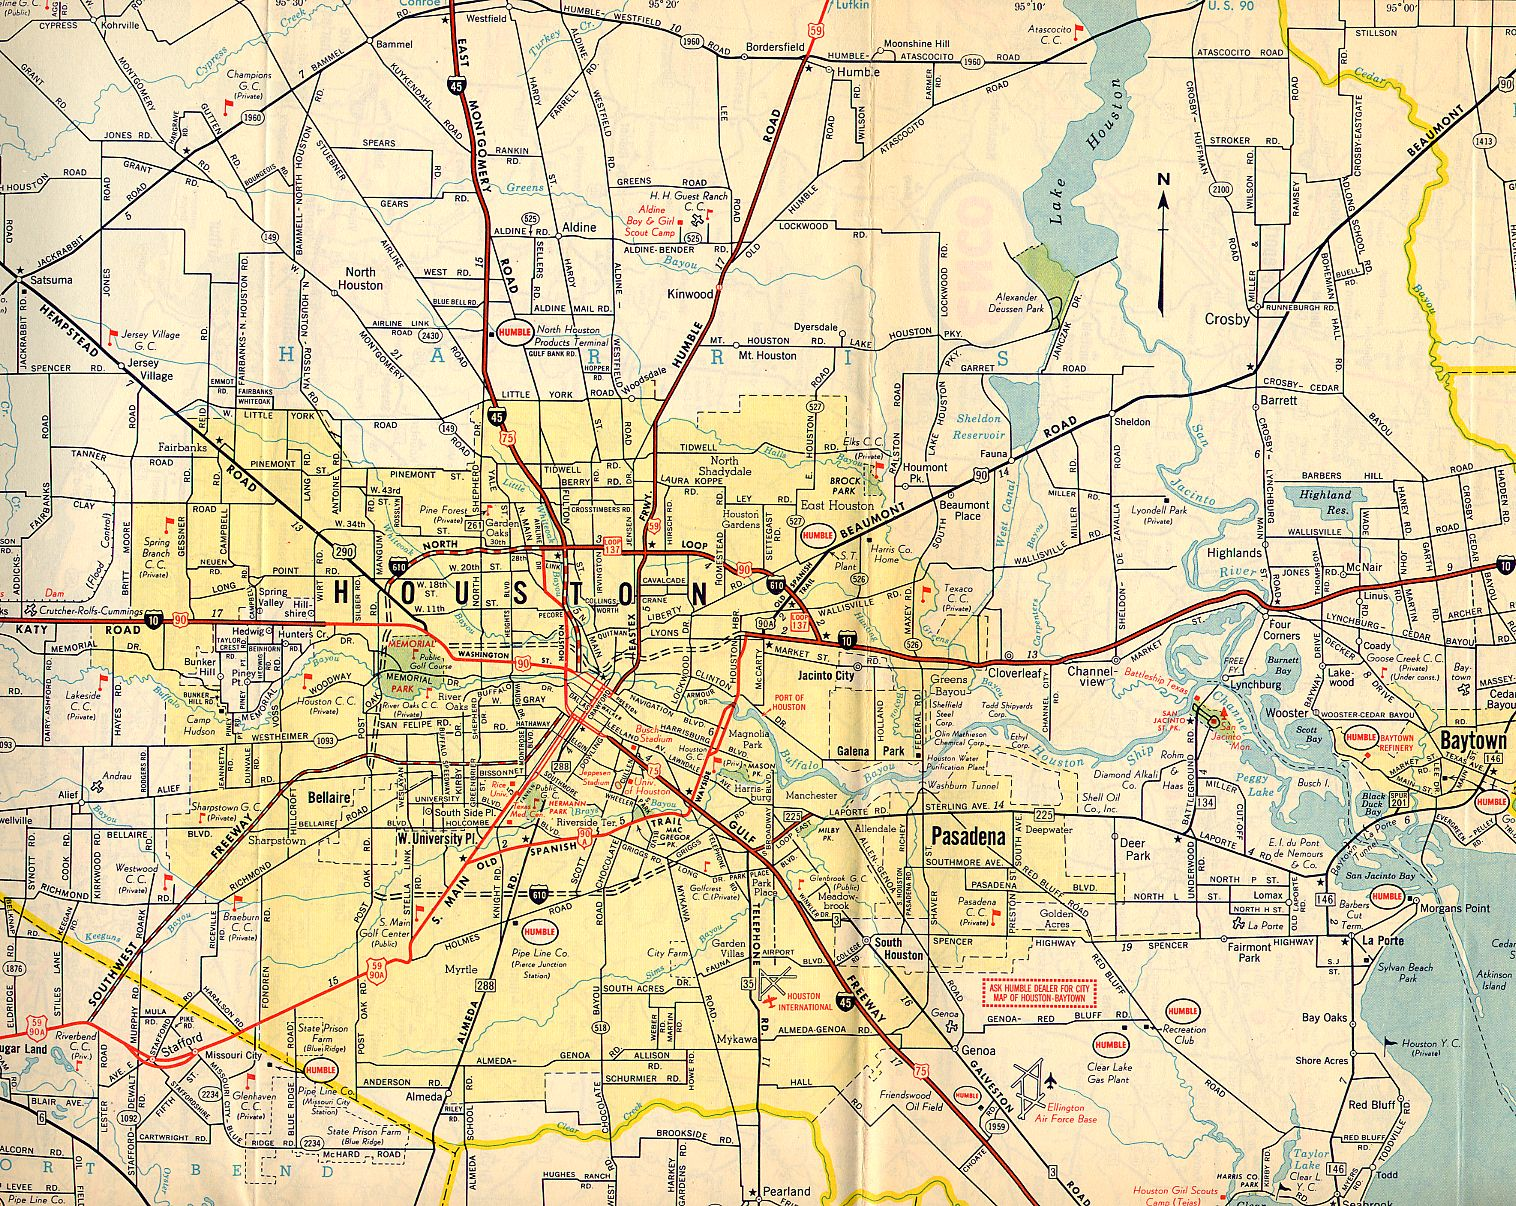 TexasFreeway Houston Historical Information Old Road Maps - Port of houston map